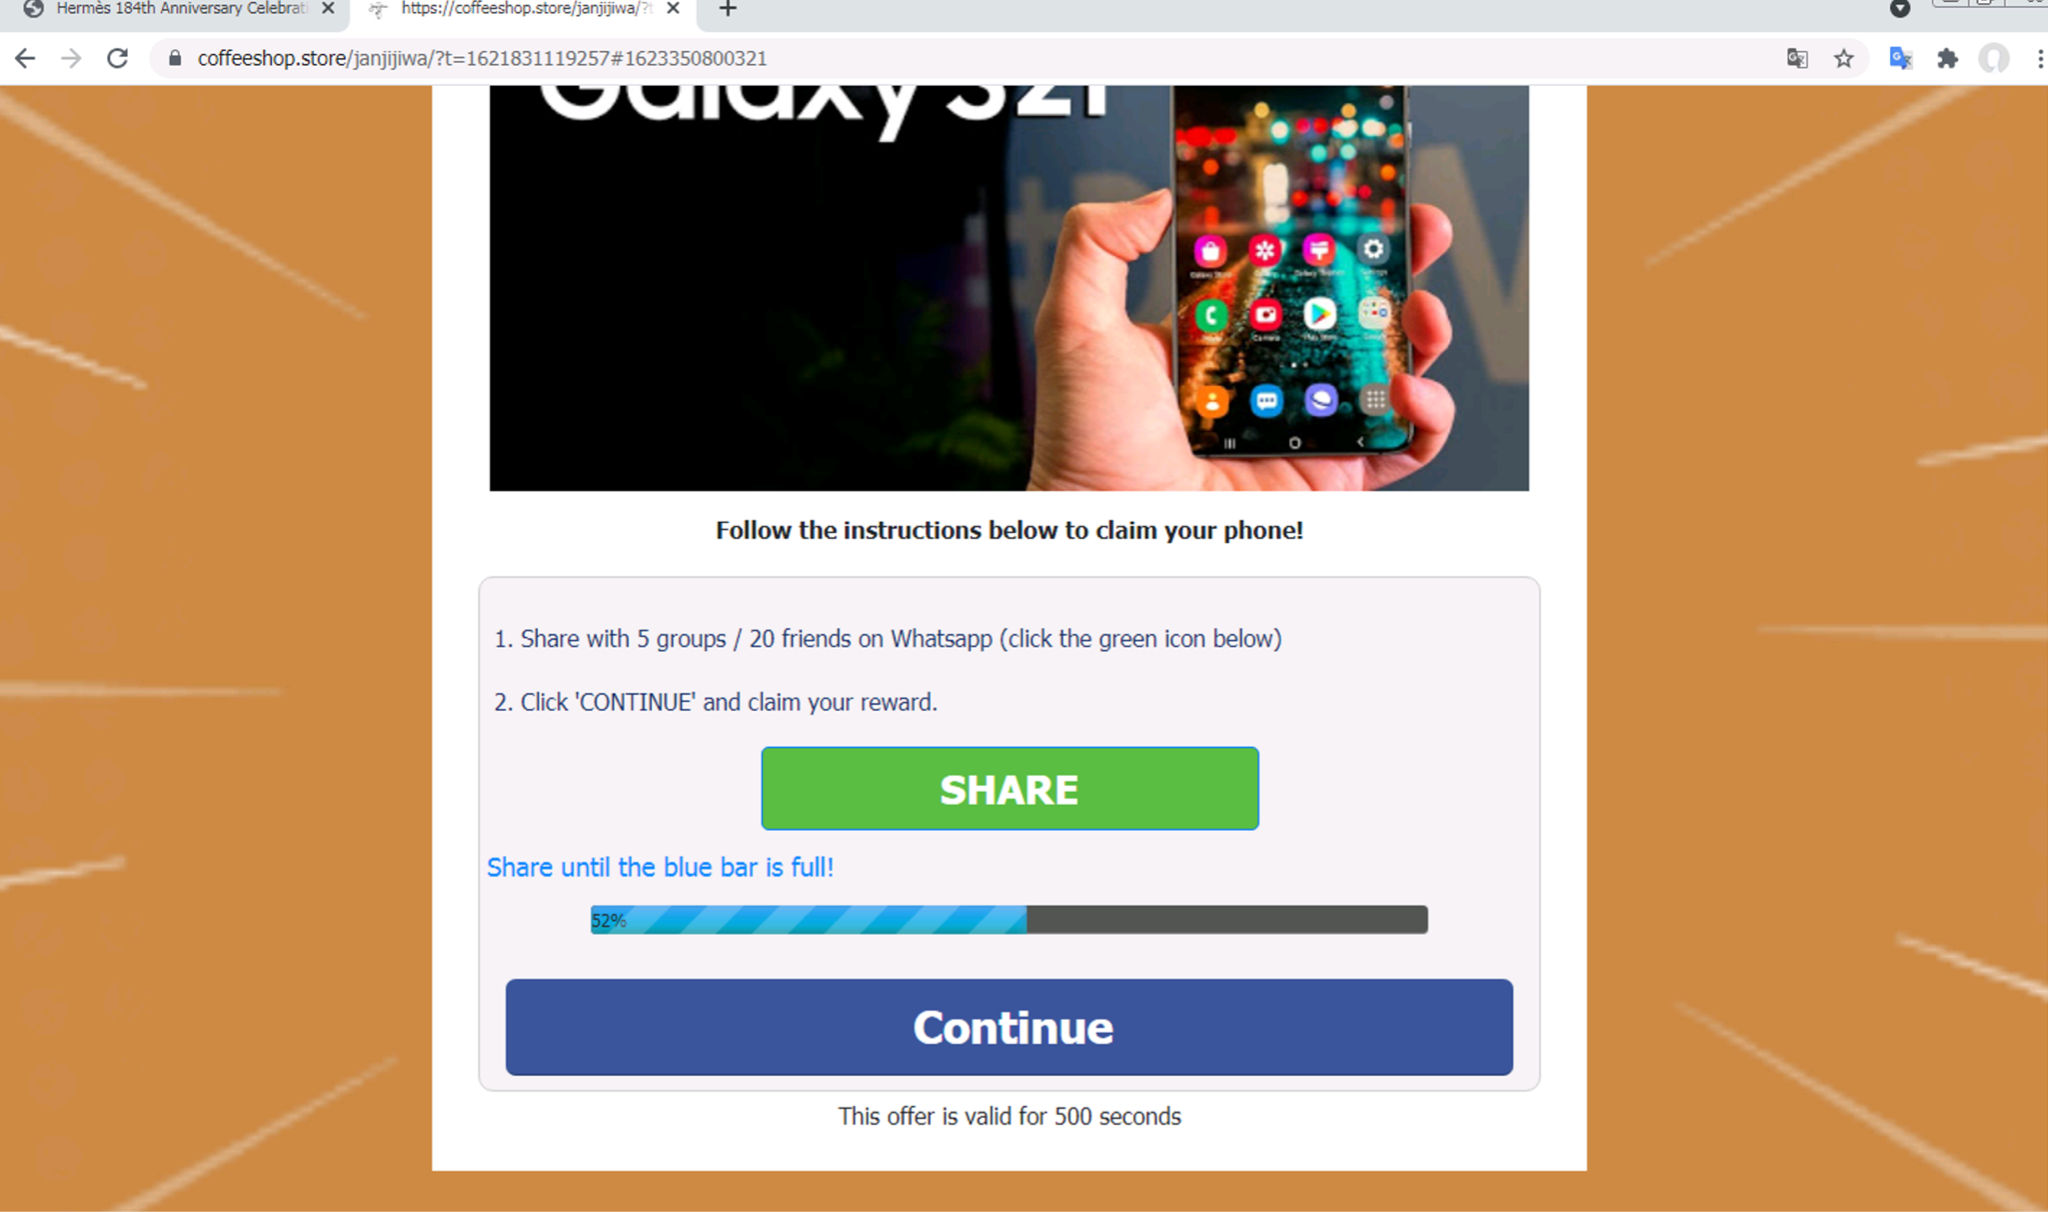 If the victim of the scam page shown follows the page's instructions to share it on WhatsApp, the blue bar shown on the page is incremented farther toward the right.